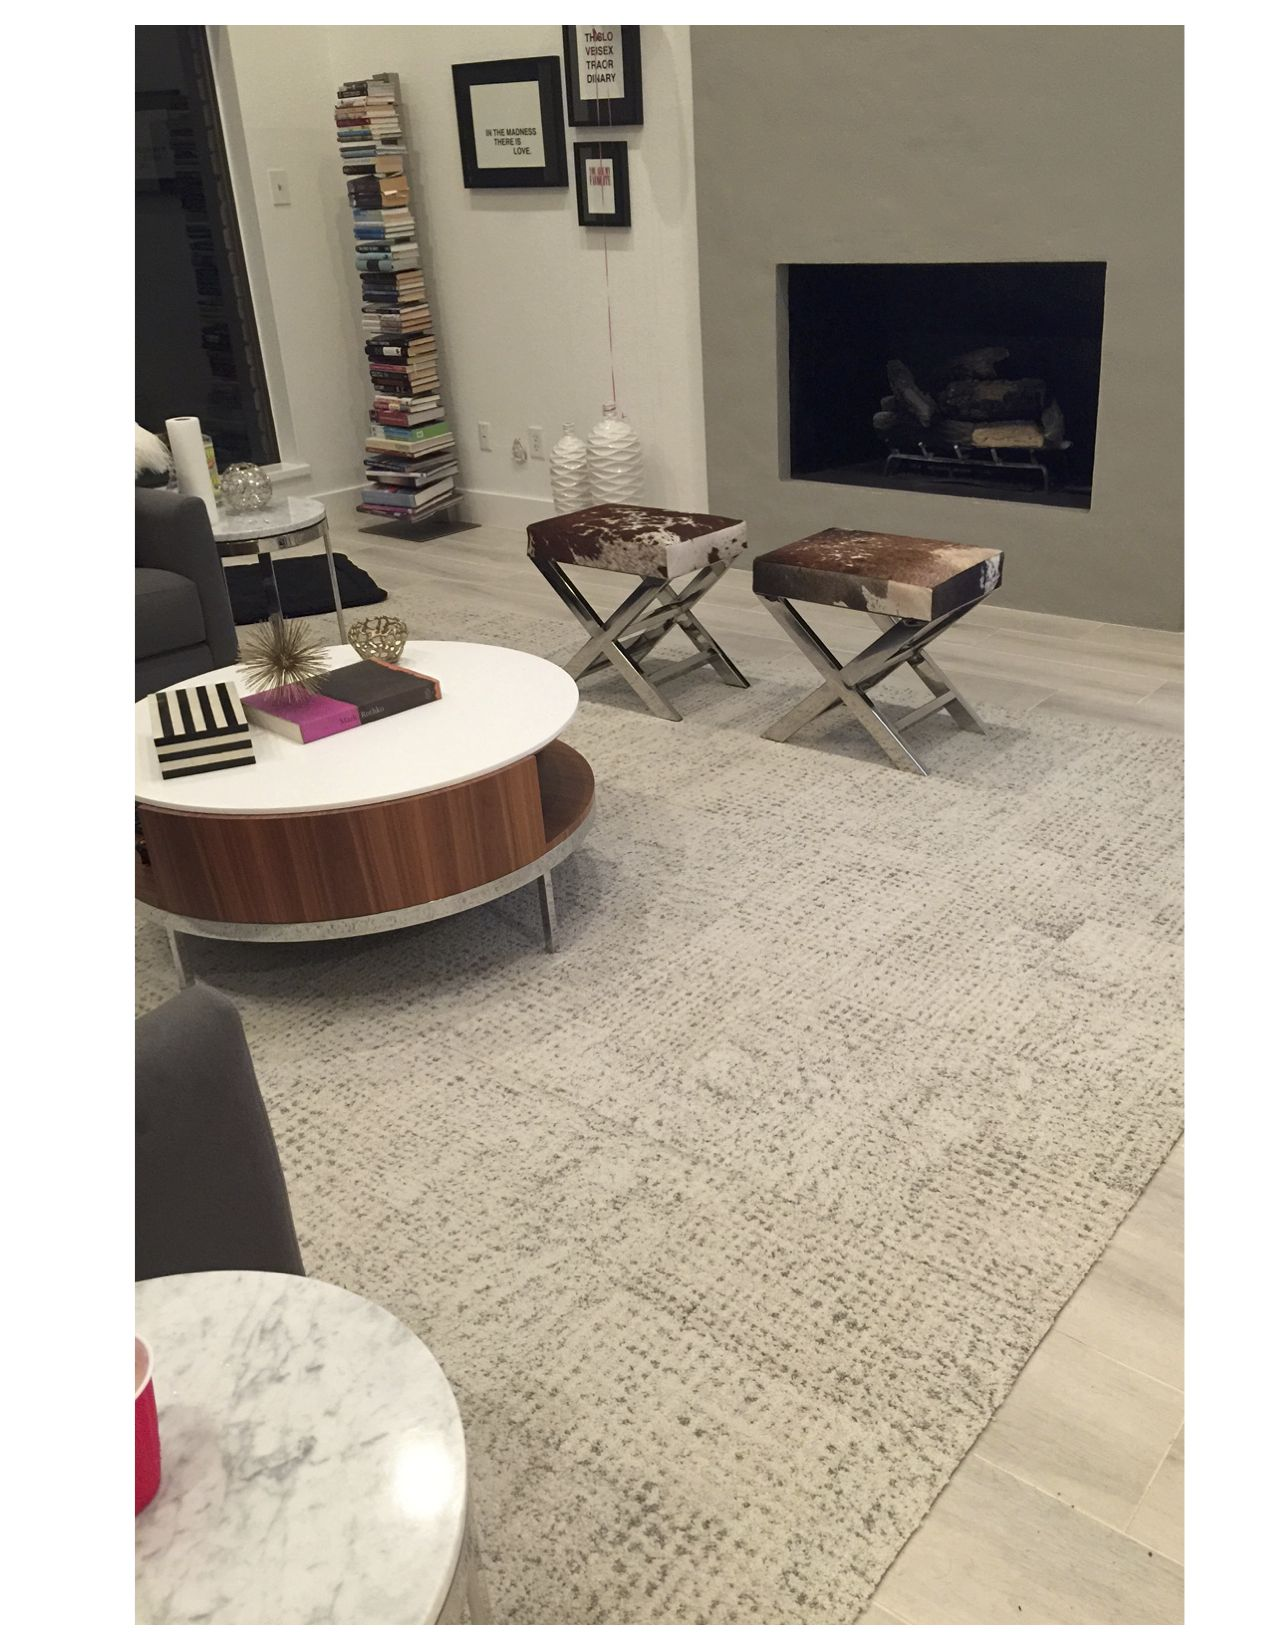 Its snow problem in bone looks stunning in this living room flor our modern carpet tiles allow you to create custom unique area rugs that are as durable as they are stylish design your perfect rug with flor dailygadgetfo Images